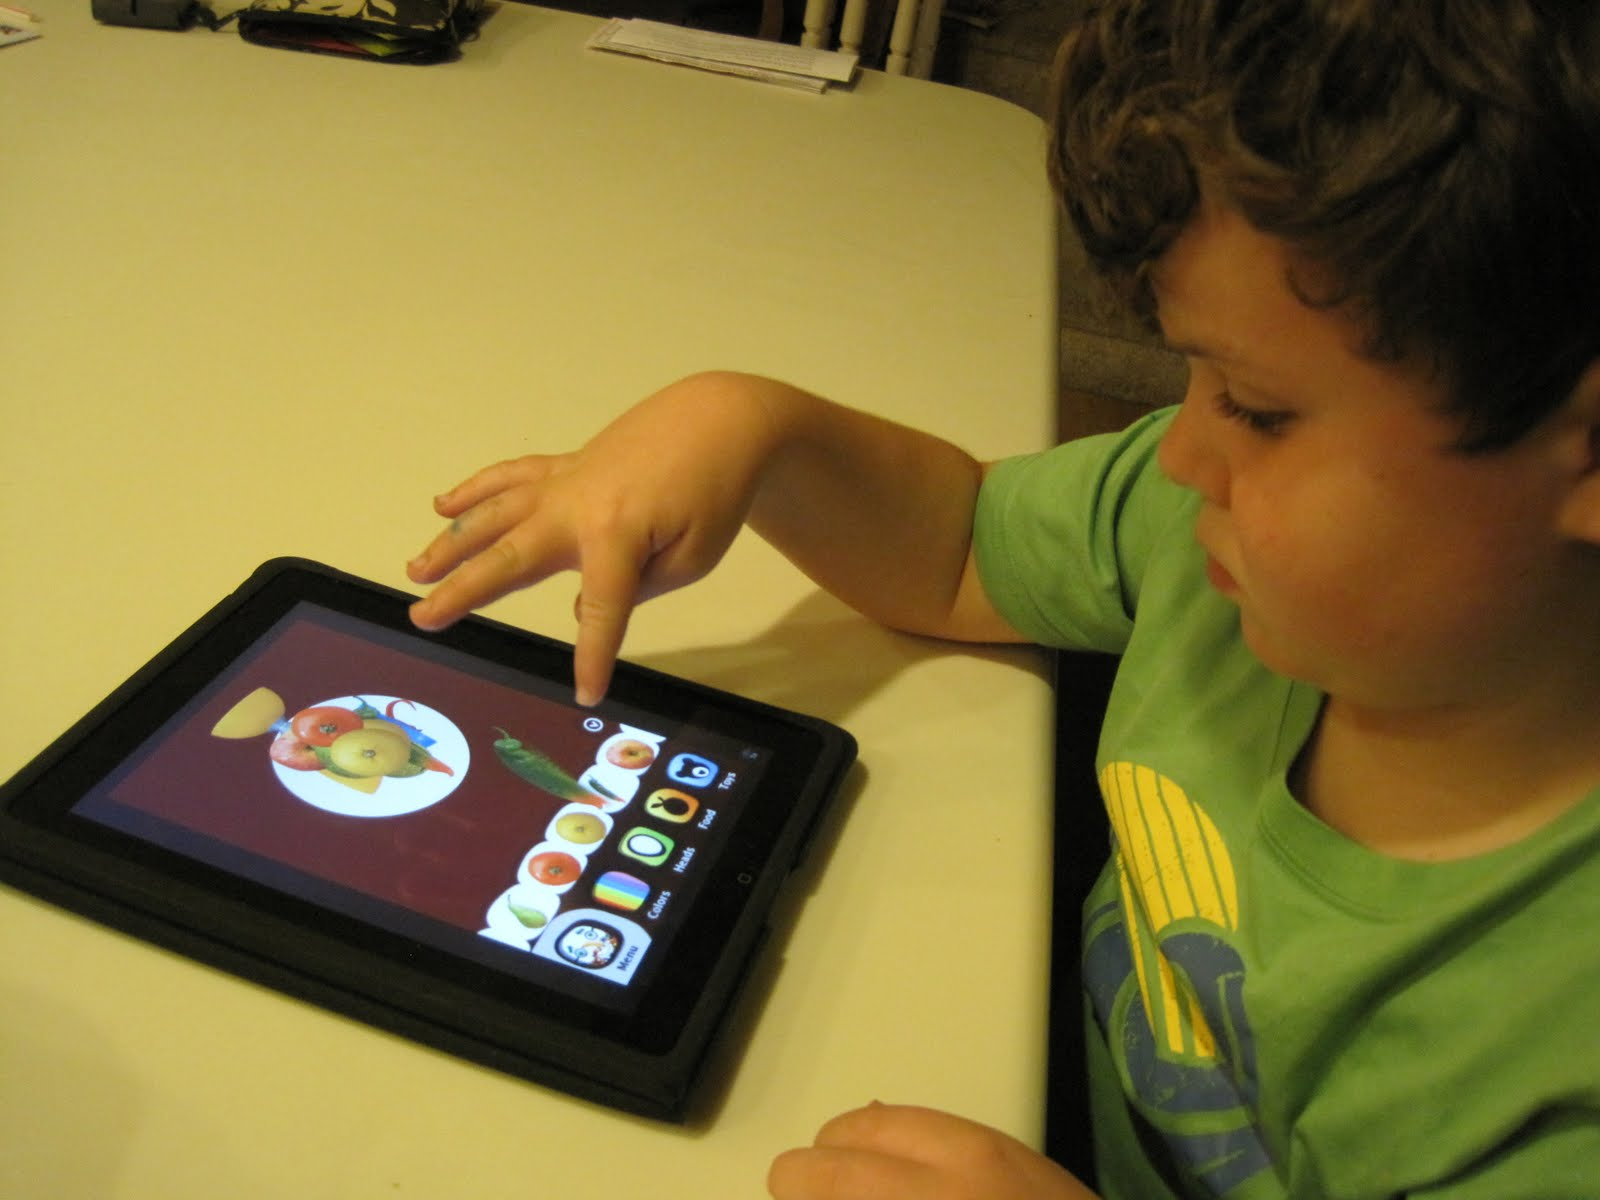 SQUIDALICIOUS iPad Apps for Kids With Autism Fun es Cheap